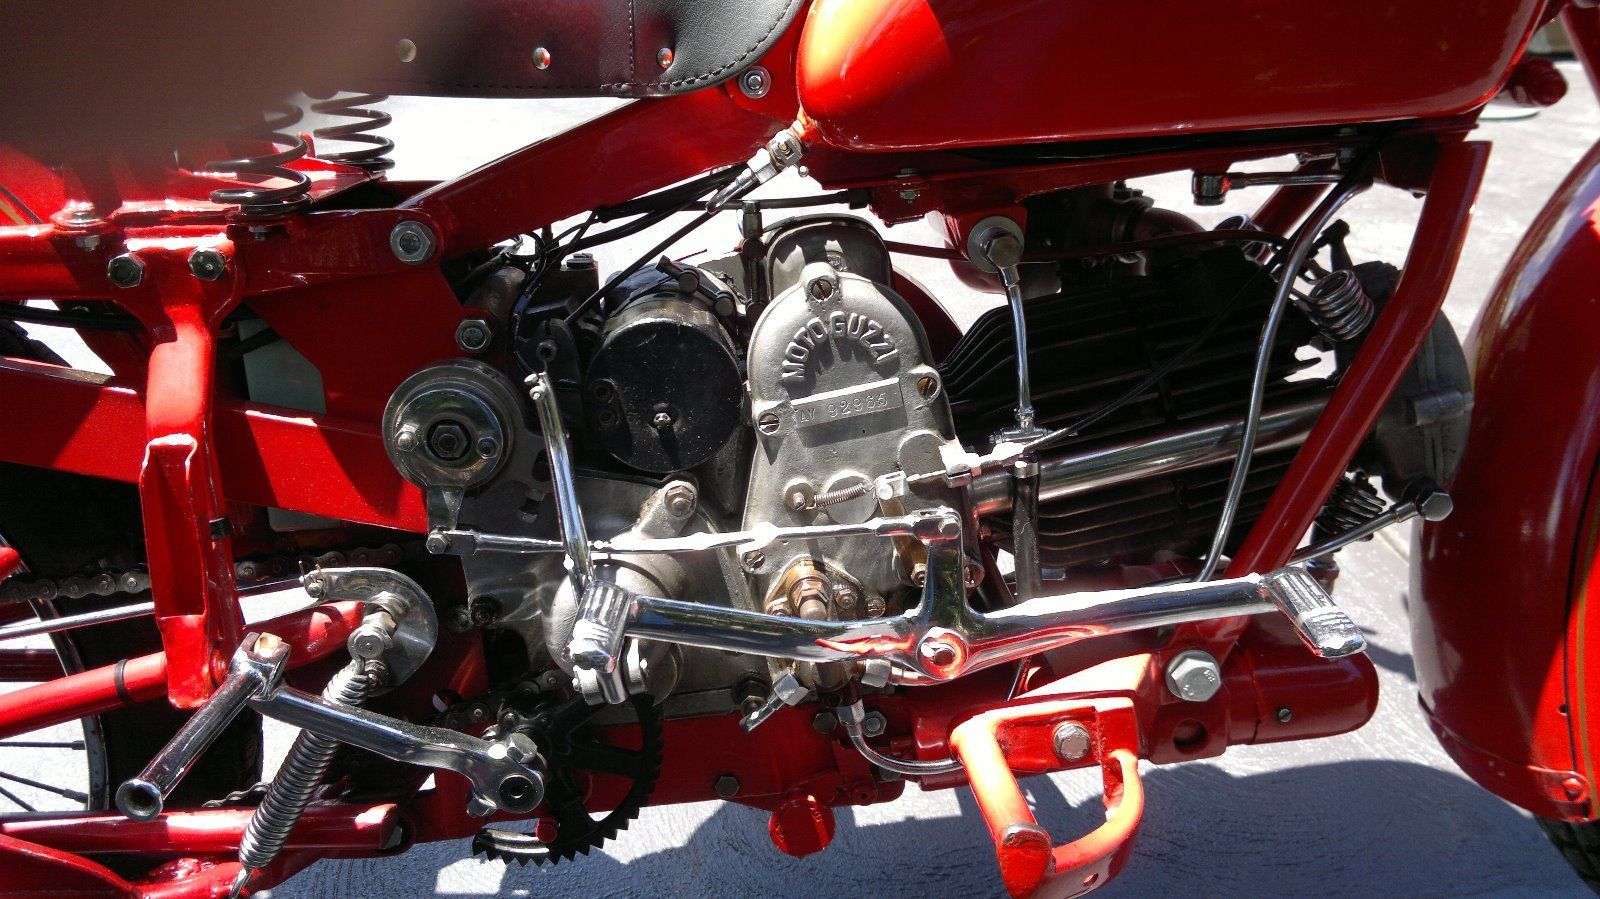 The 500cc motor lays forwards to ensure good cooling at the cylinder head. (Picture courtesy eBay).